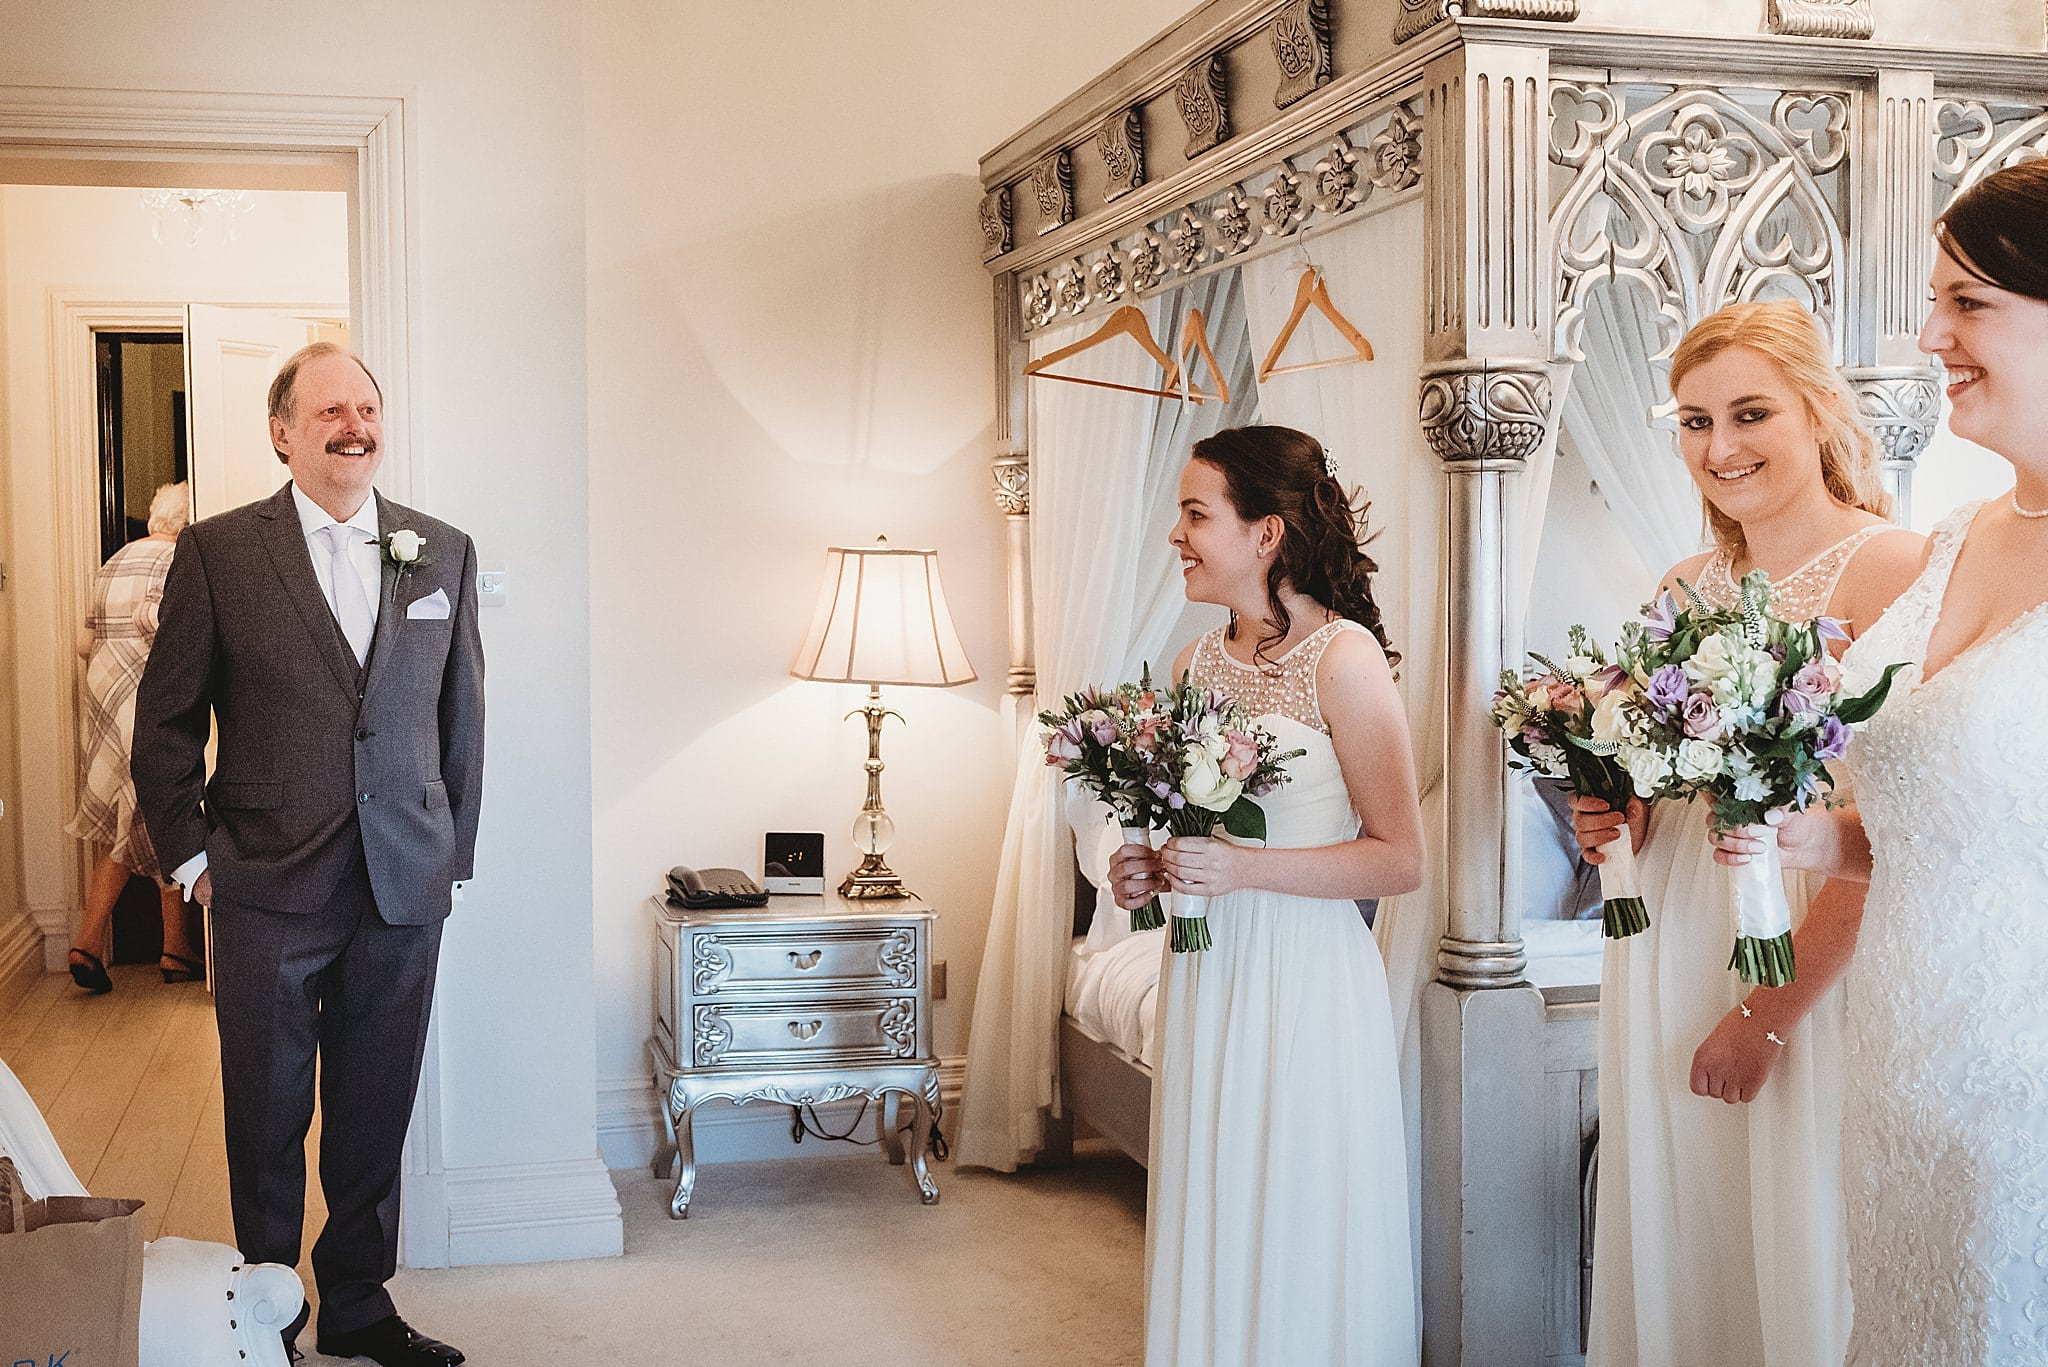 Father of the brides happy reaction as he walks into see his daughter on her wedding day in the bridal suit of Manor by the lake